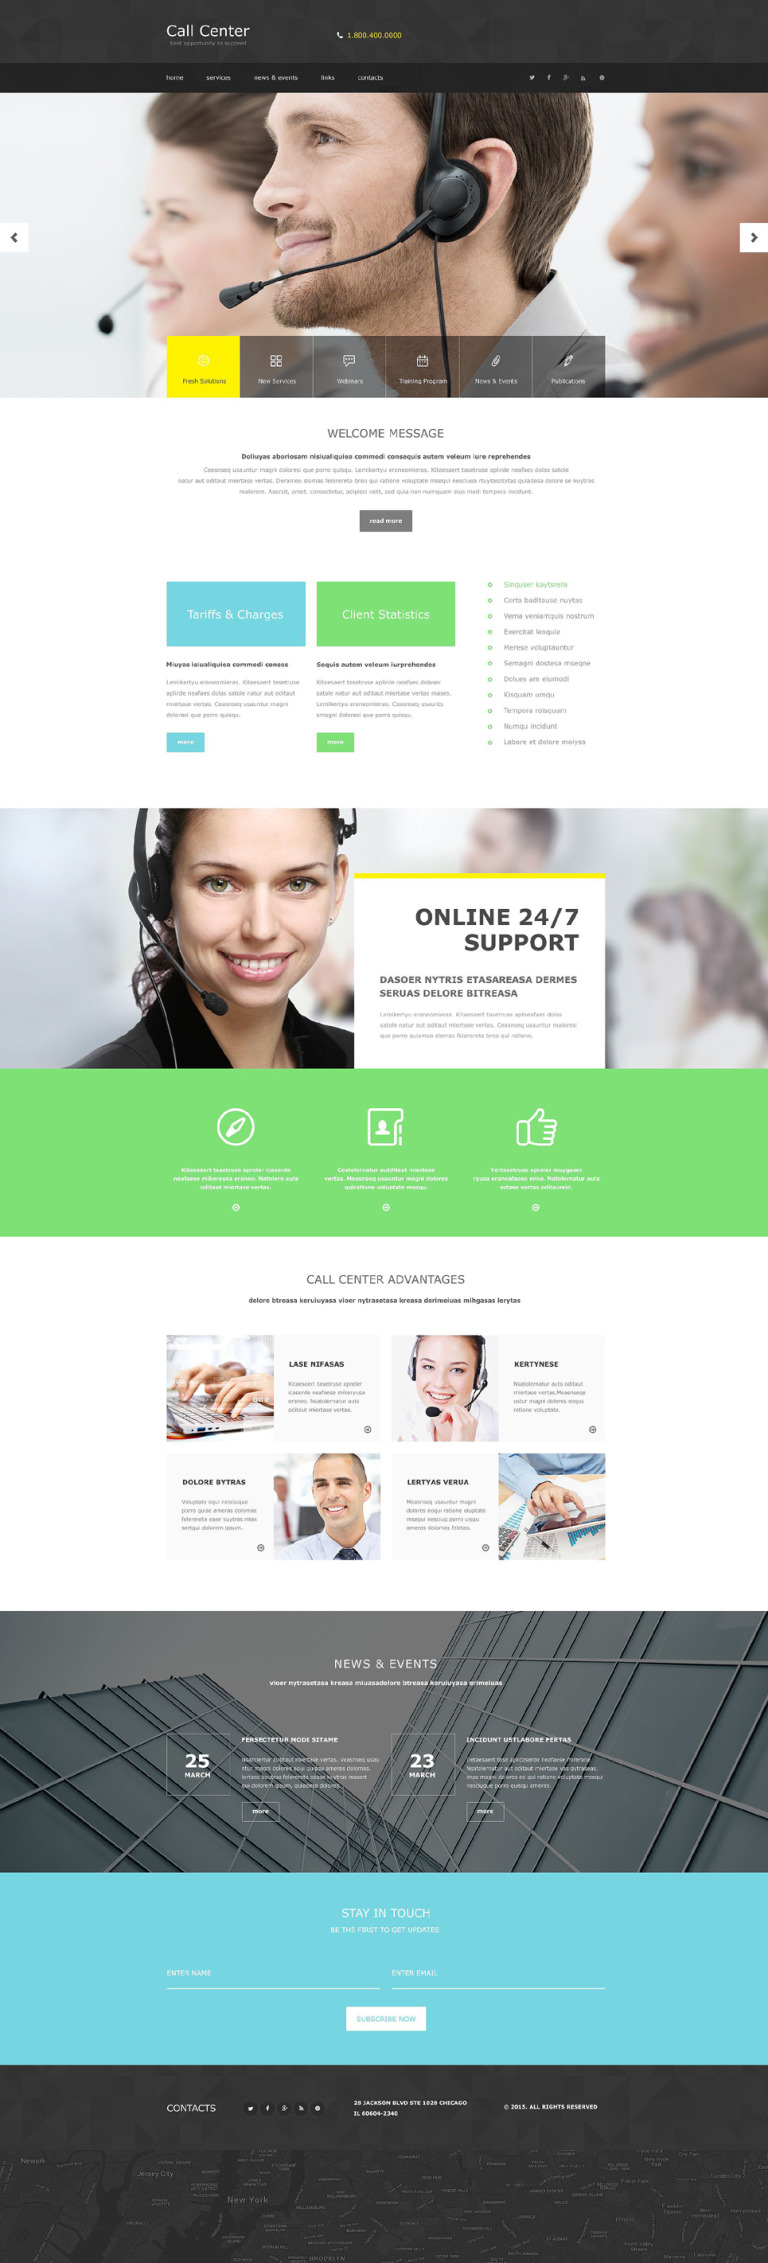 Call Center Muse Template New Screenshots BIG